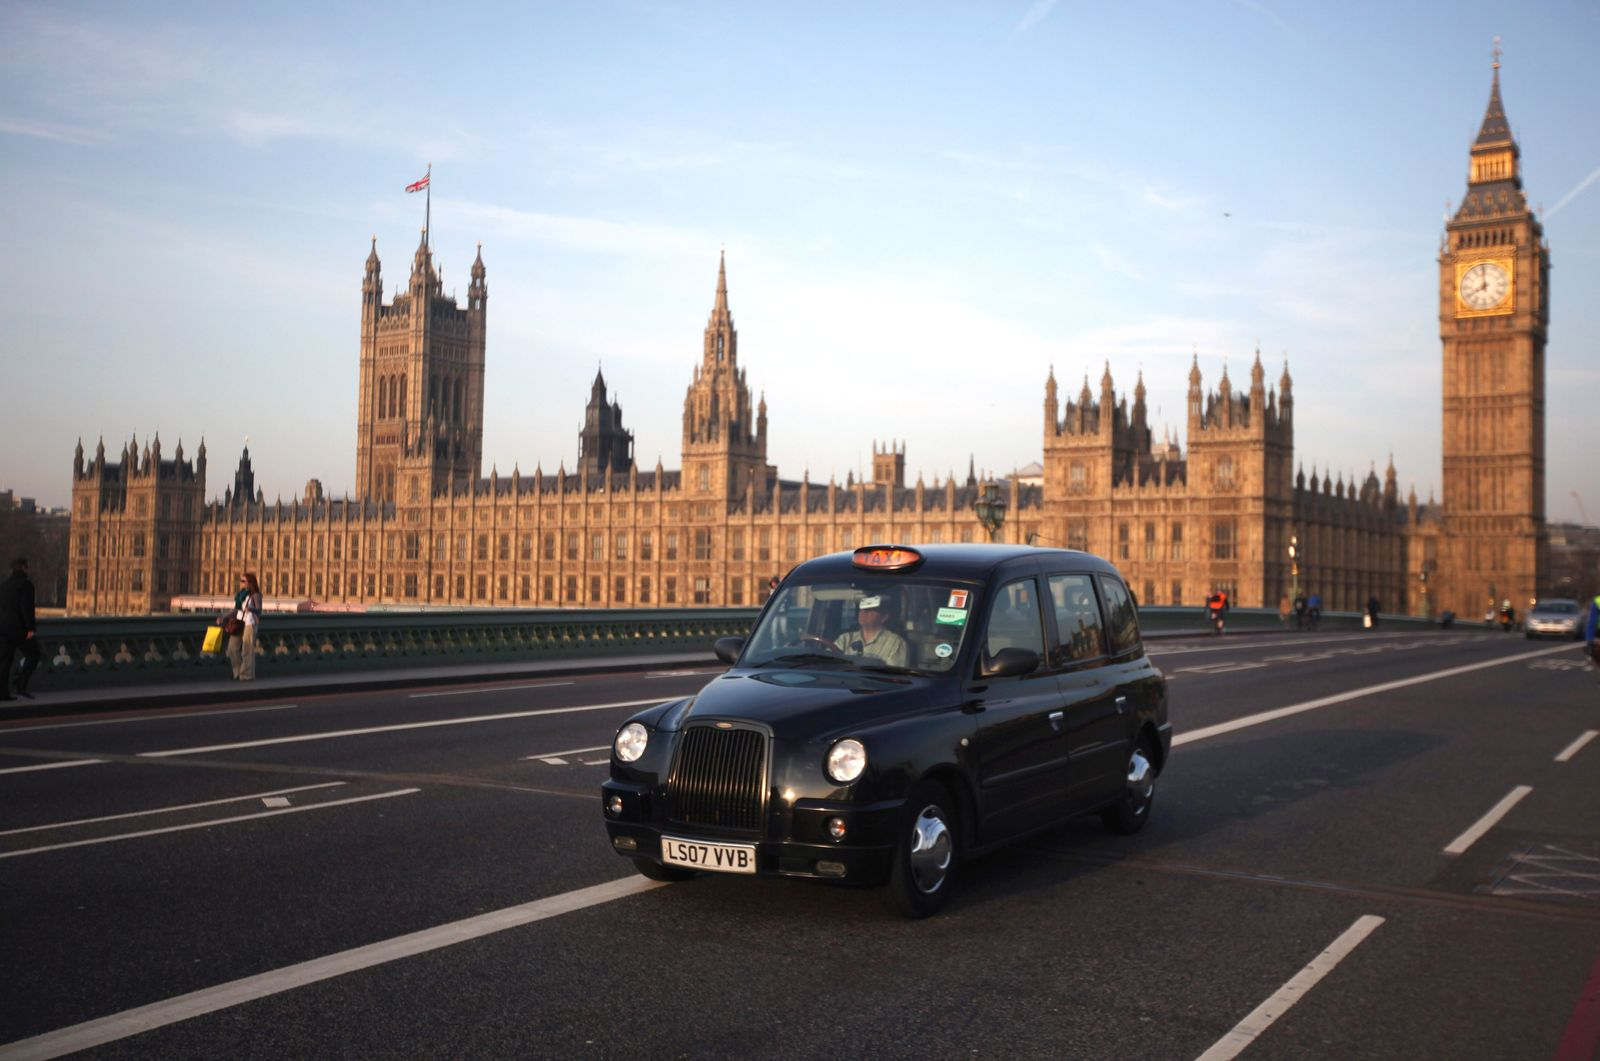 Black Cab / Taxi / Westminster Abbey